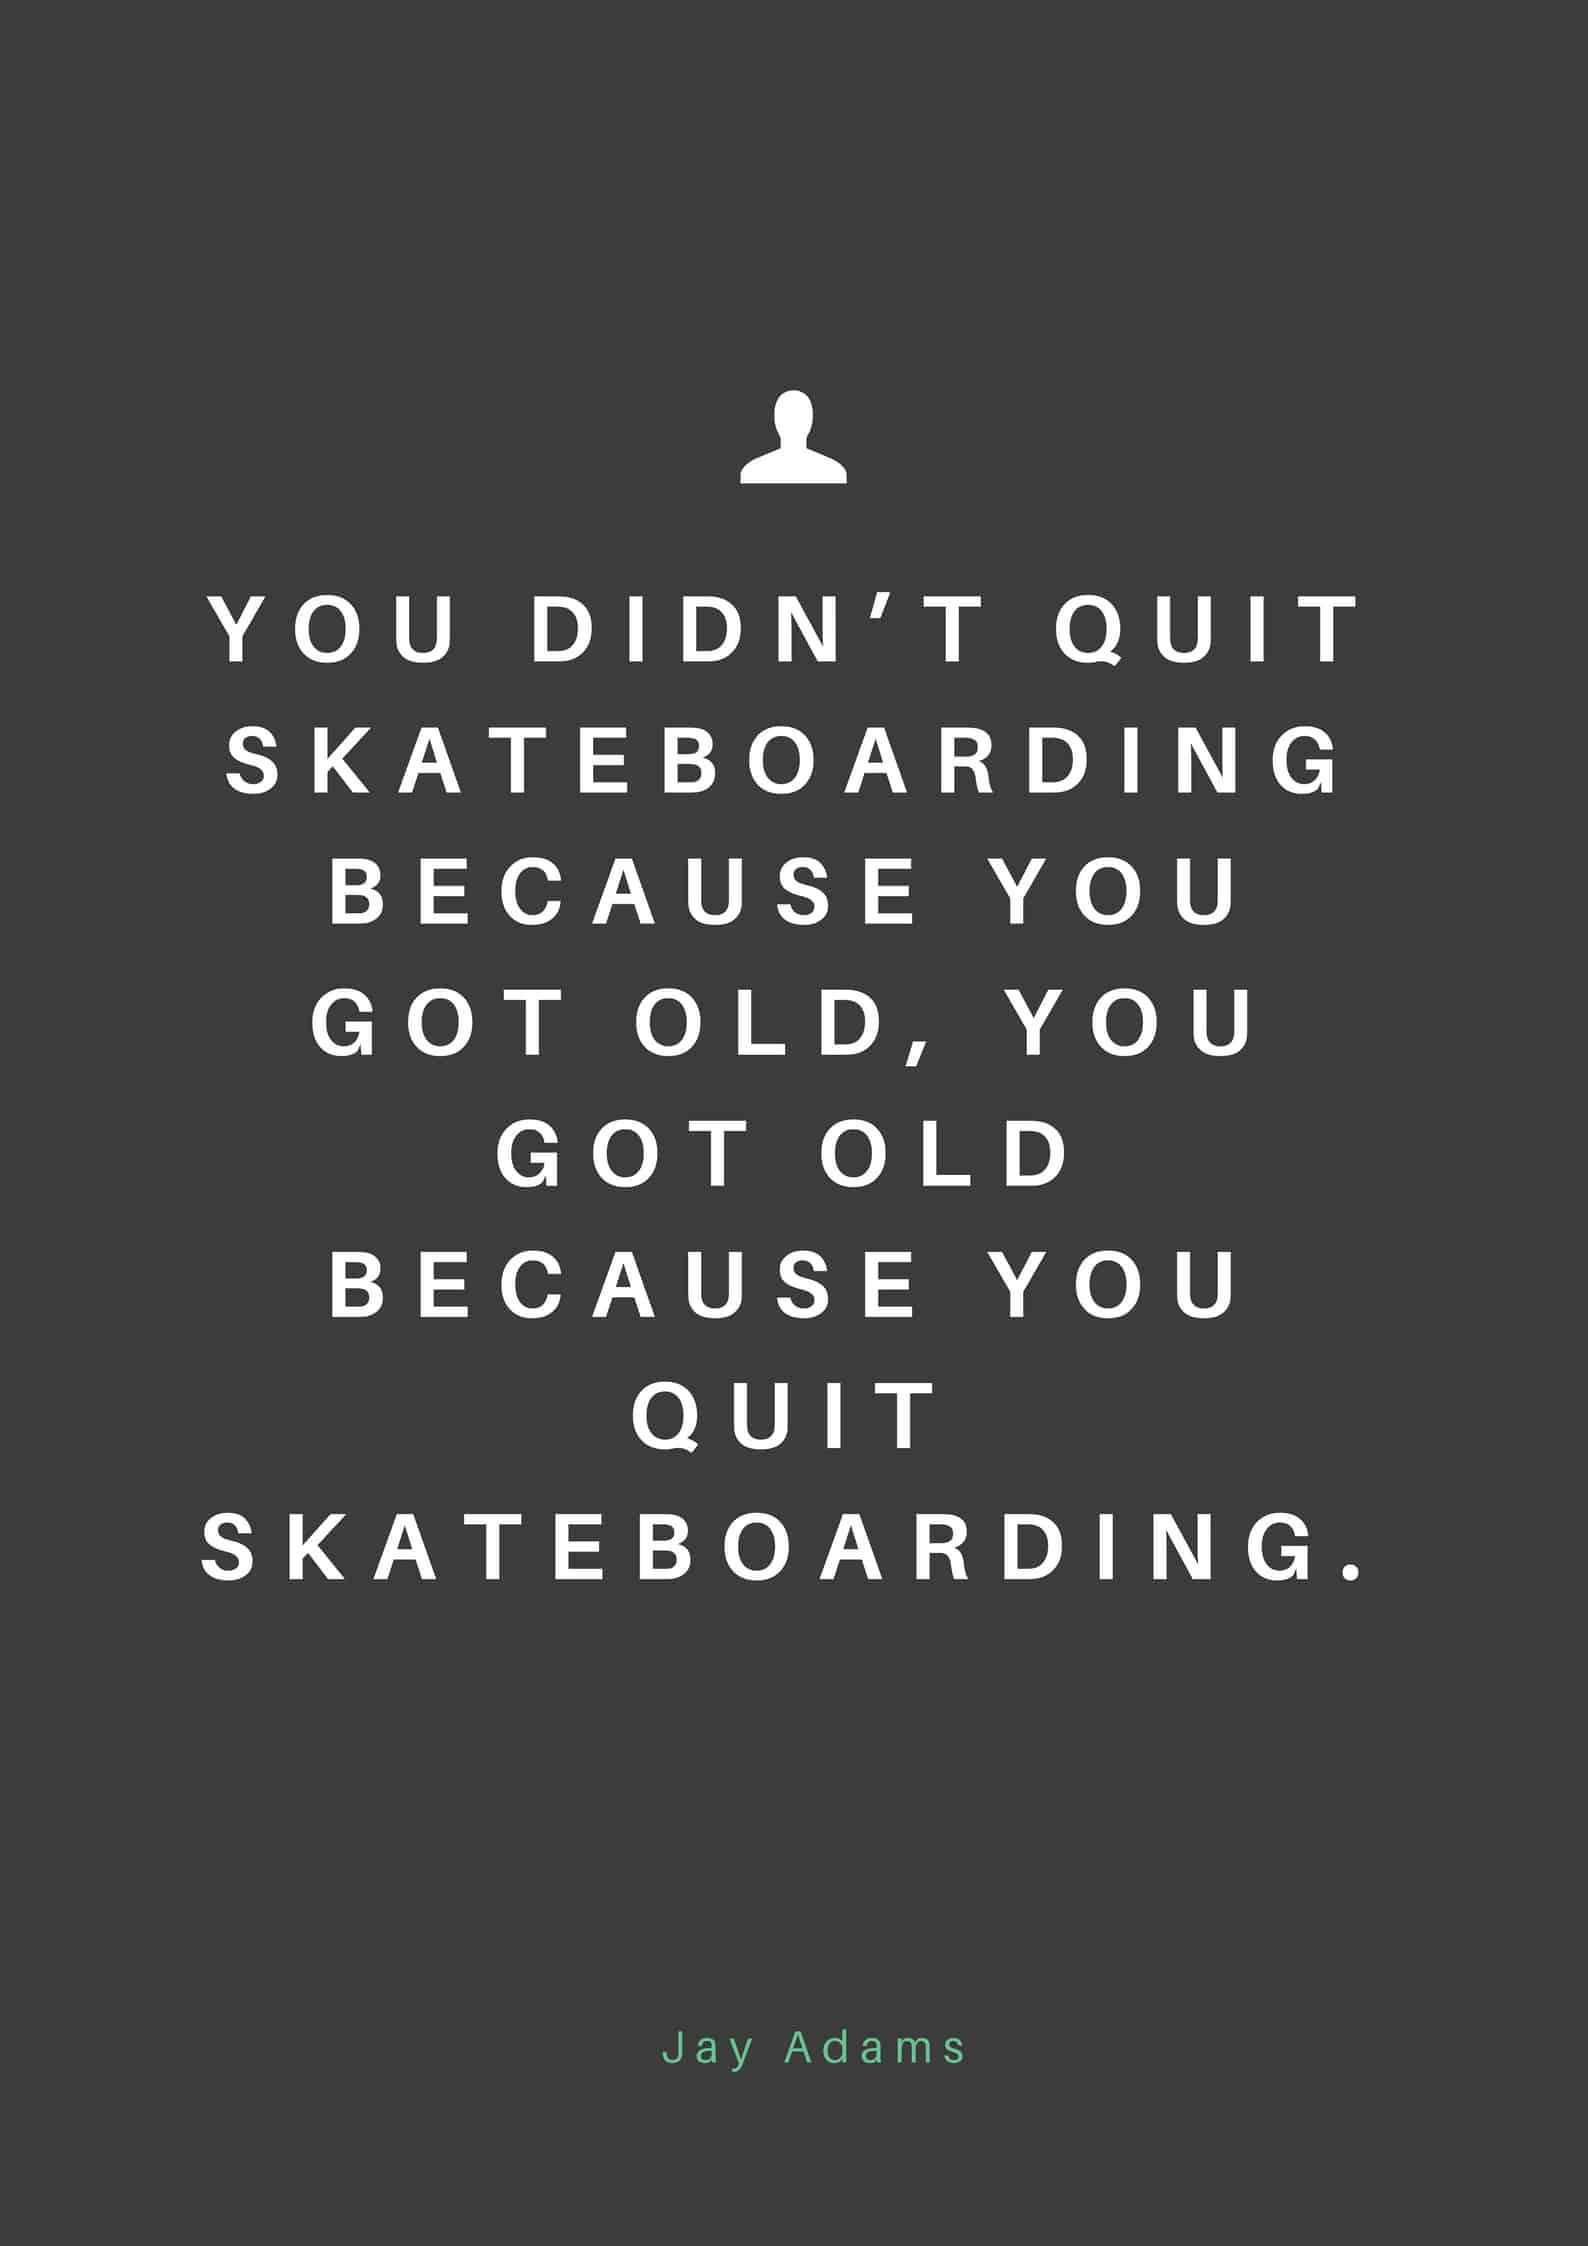 You didn't quit skateboarding because you got old, you got old because you quit skateboarding.